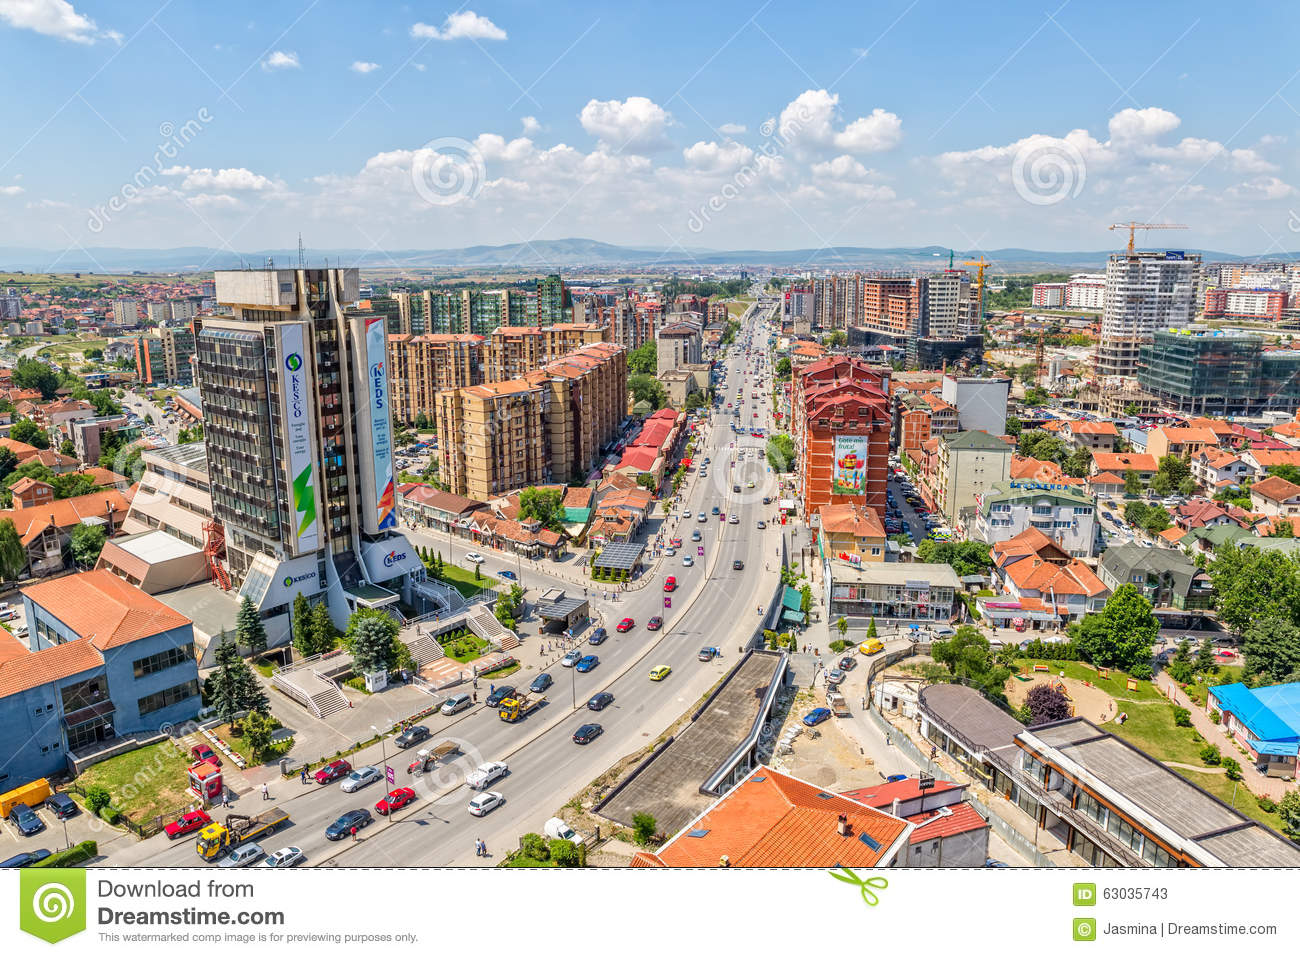 PRISTINA, KOSOVO - JULY 01, 2015: Aerial view of the big residential ...